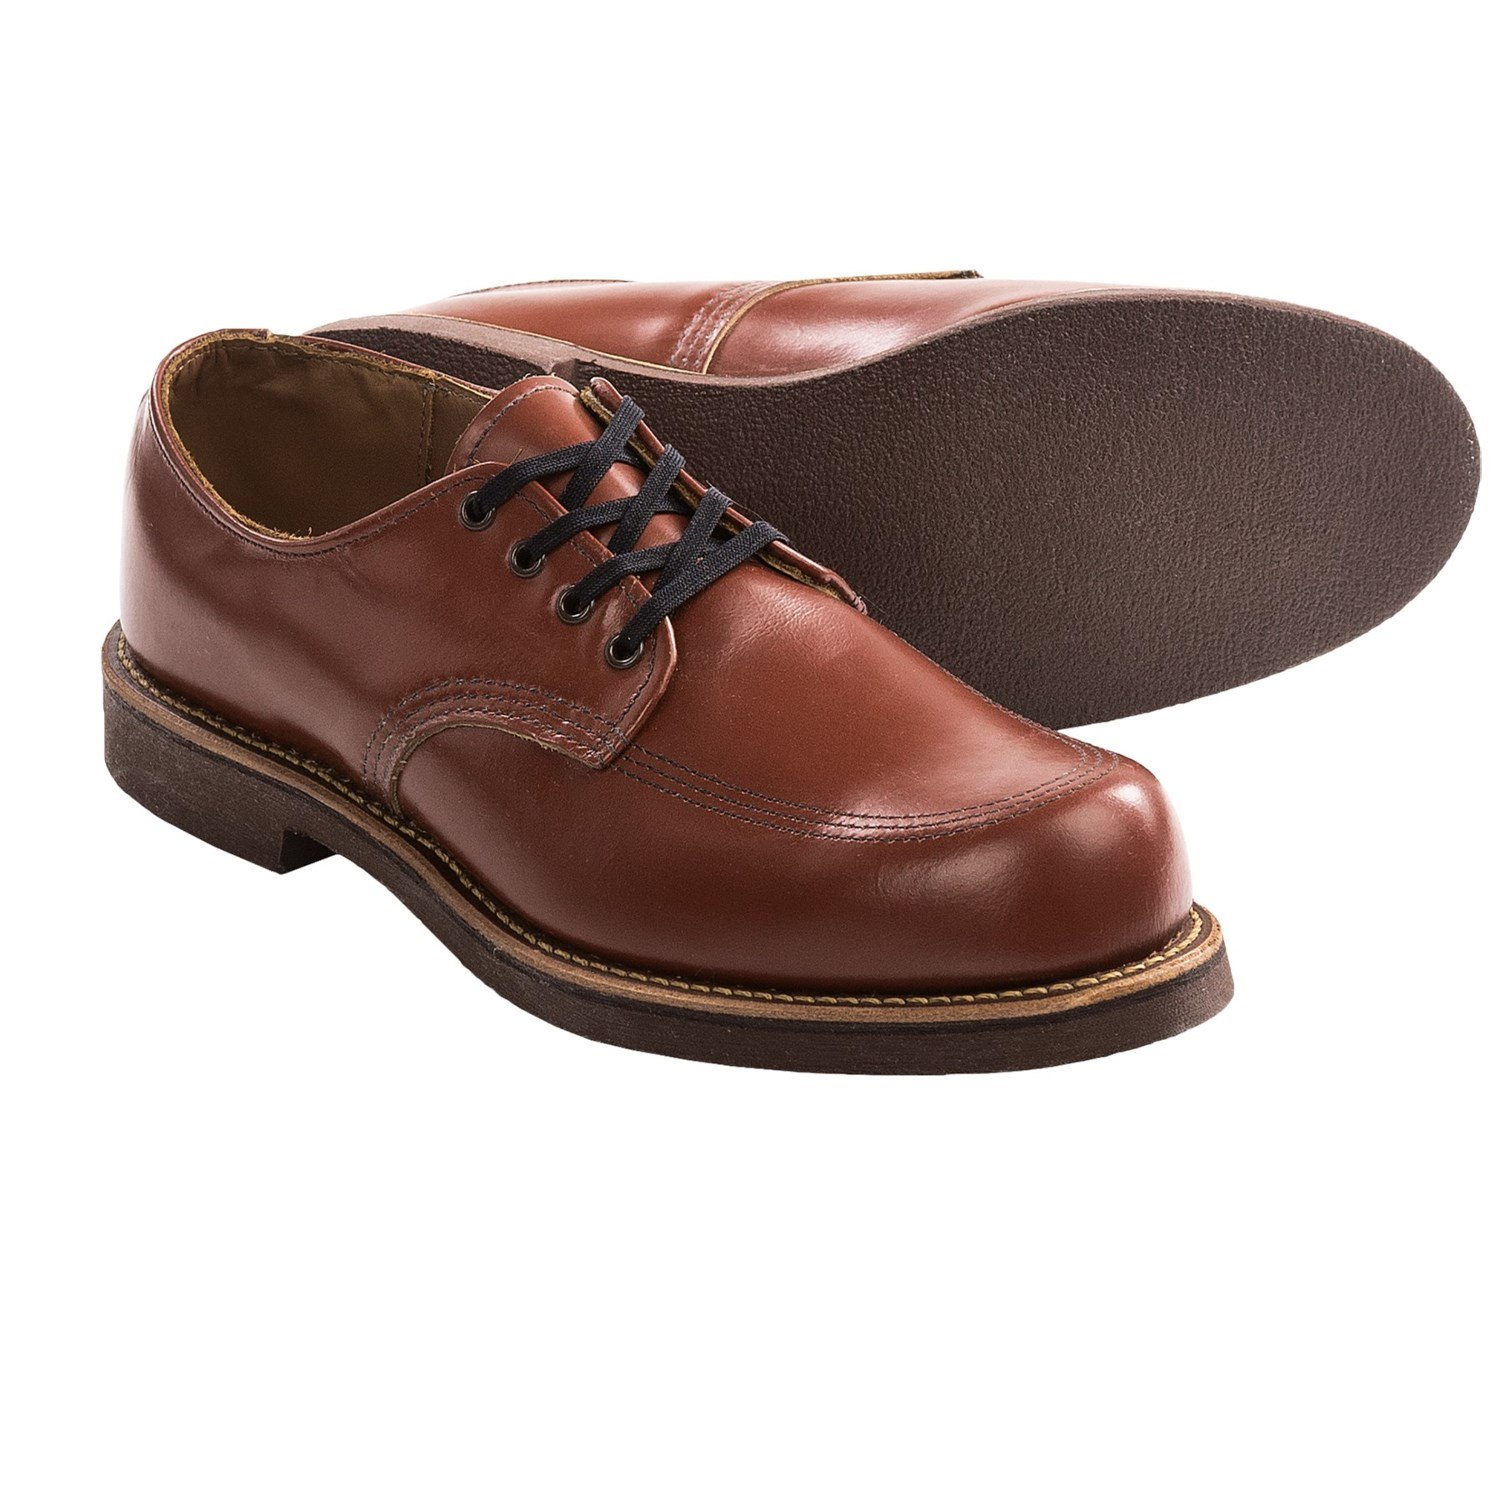 Shop for men's Oxfords online at Men's Wearhouse. Browse the latest Shoes styles & selection for men from top brands & designers from the leader in men's apparel. Available in regular sizes and big & tall sizes. Enjoy FREE Shipping on orders over $99+!